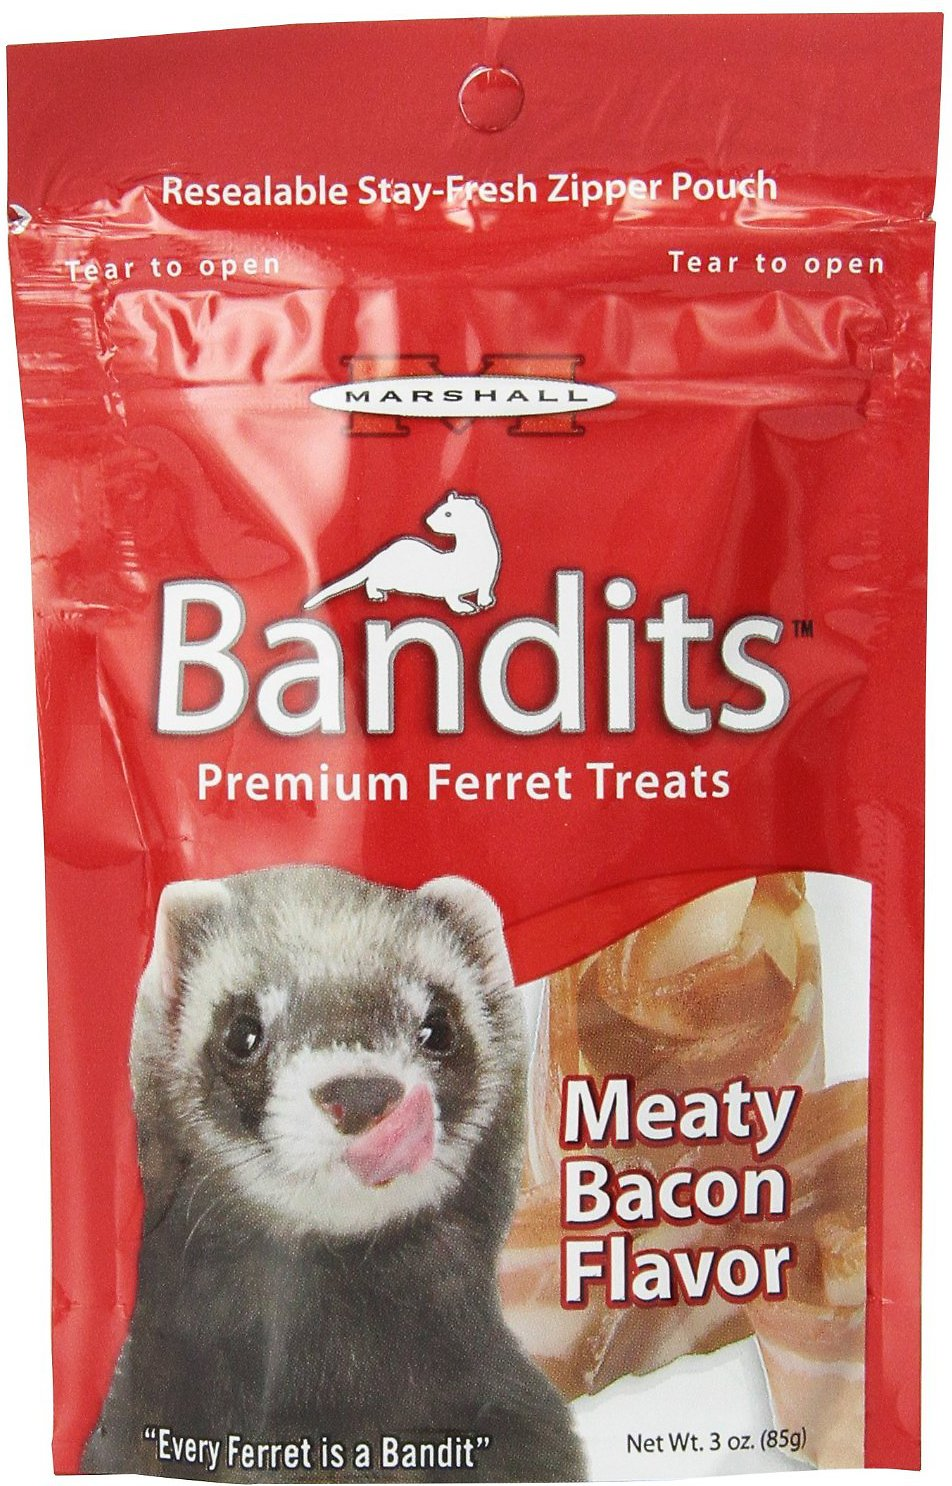 Marshall Bandits Premium Meaty Bacon Flavor Ferret Treats, 3-oz bag Image